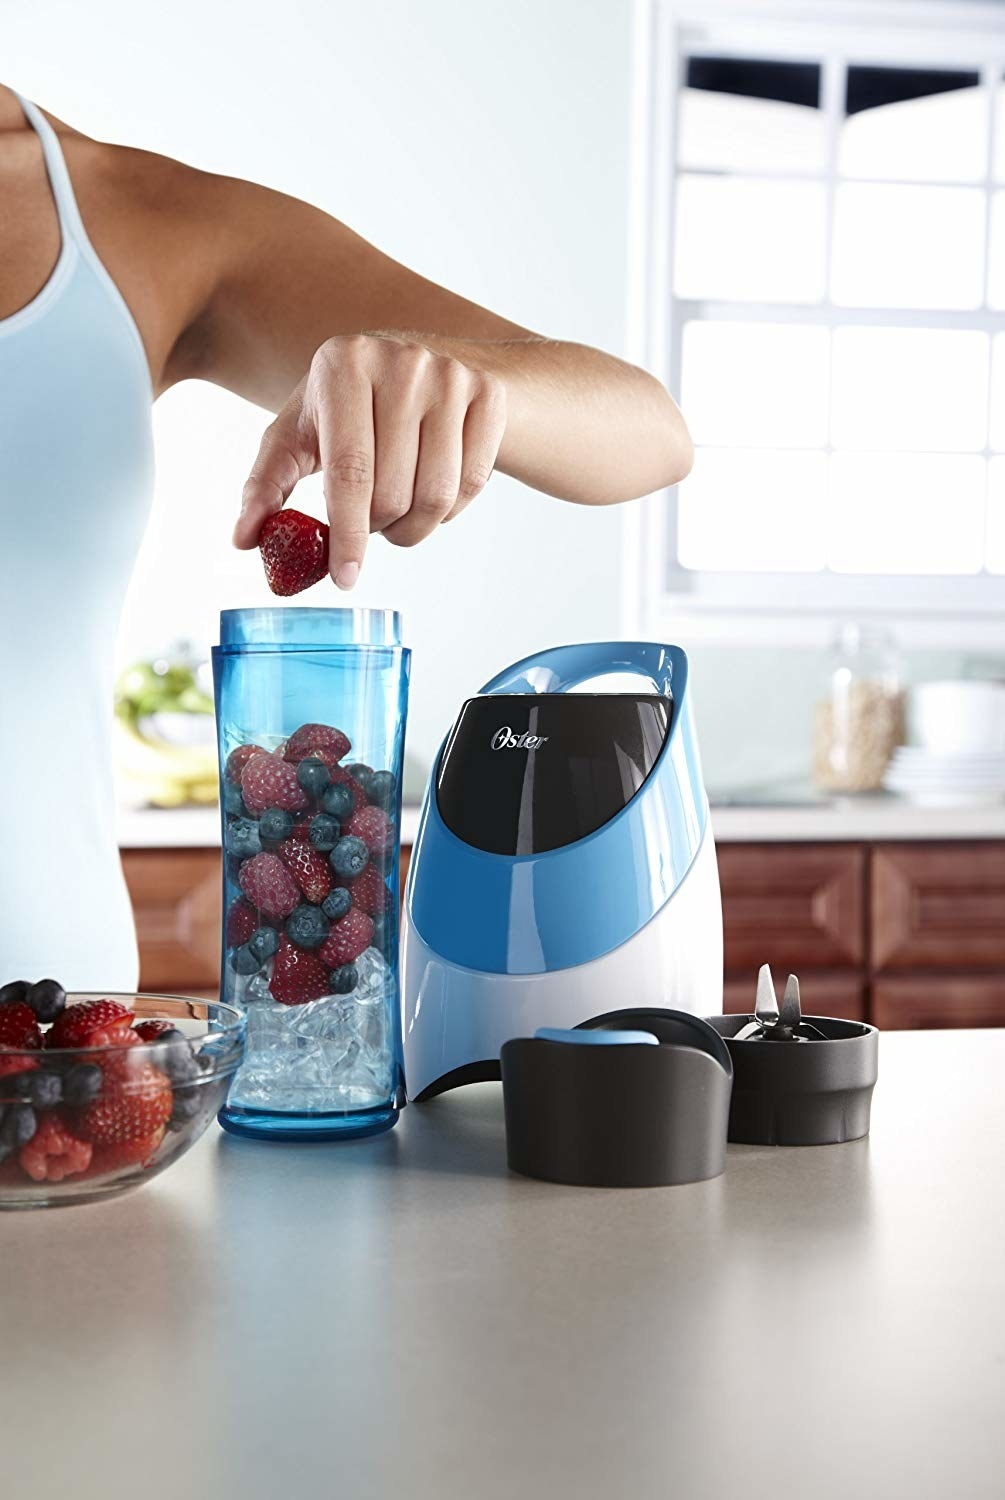 person putting berries and ice into the blender bottle